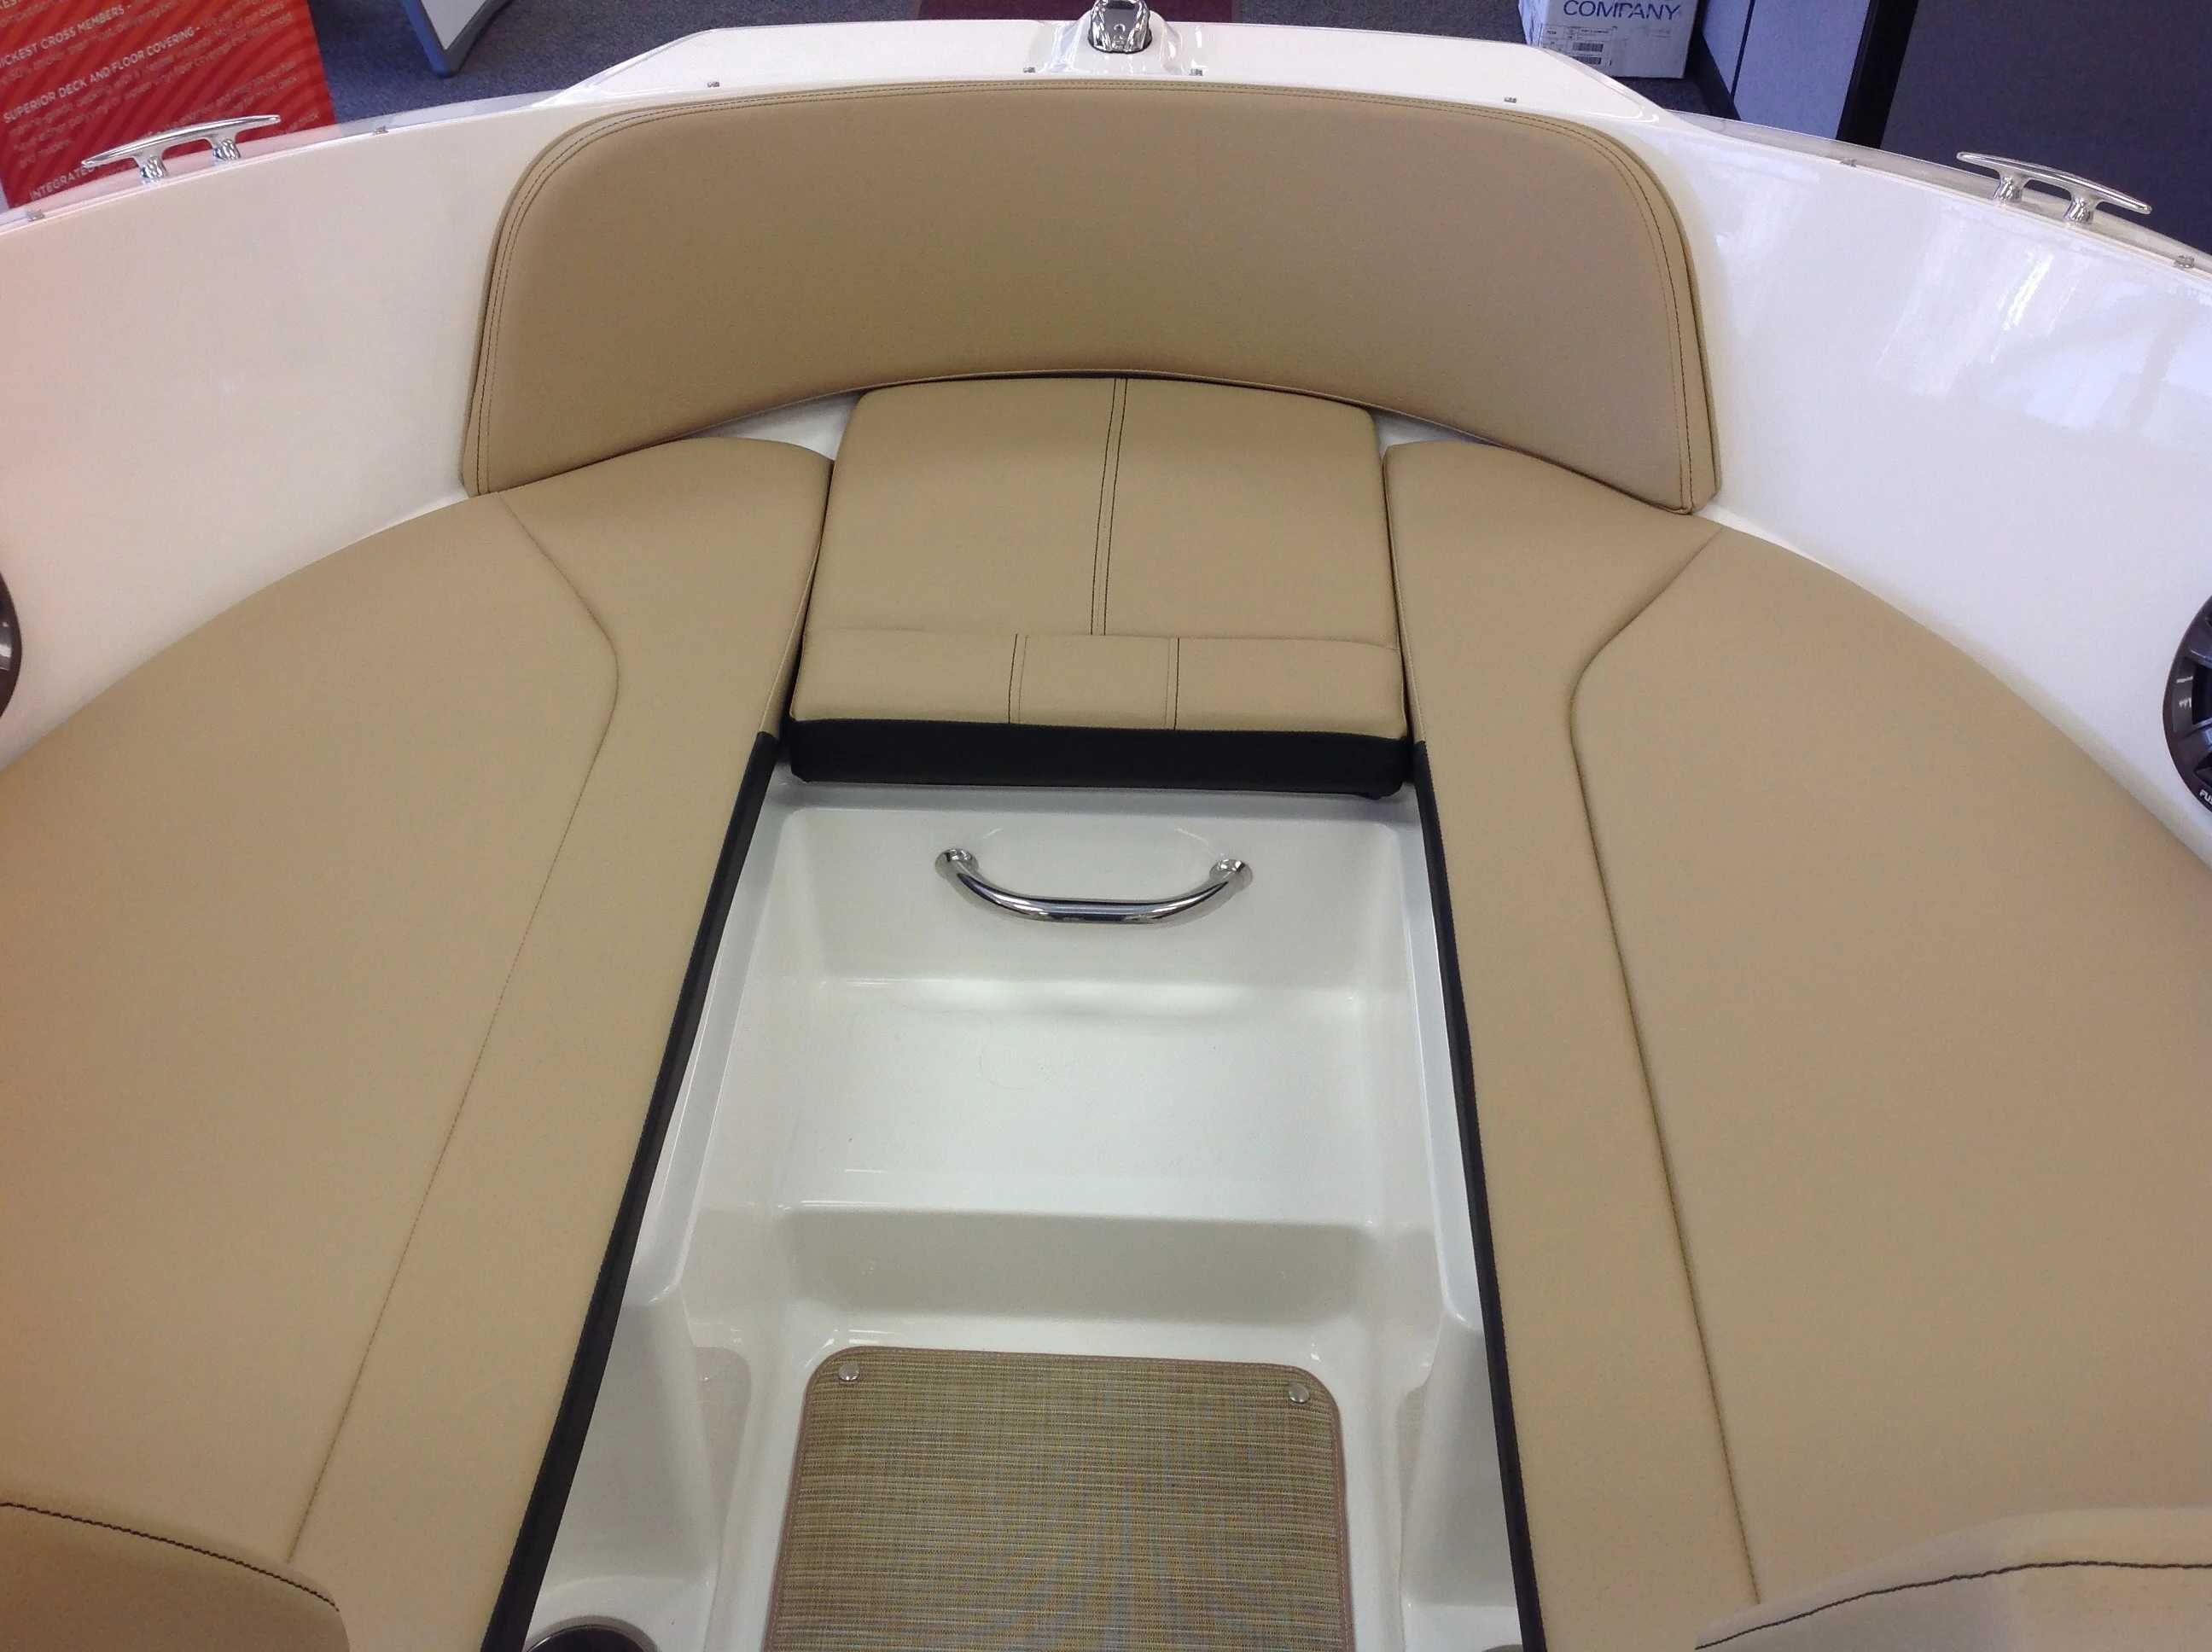 2021 Sea Ray boat for sale, model of the boat is 190 SPX & Image # 4 of 12